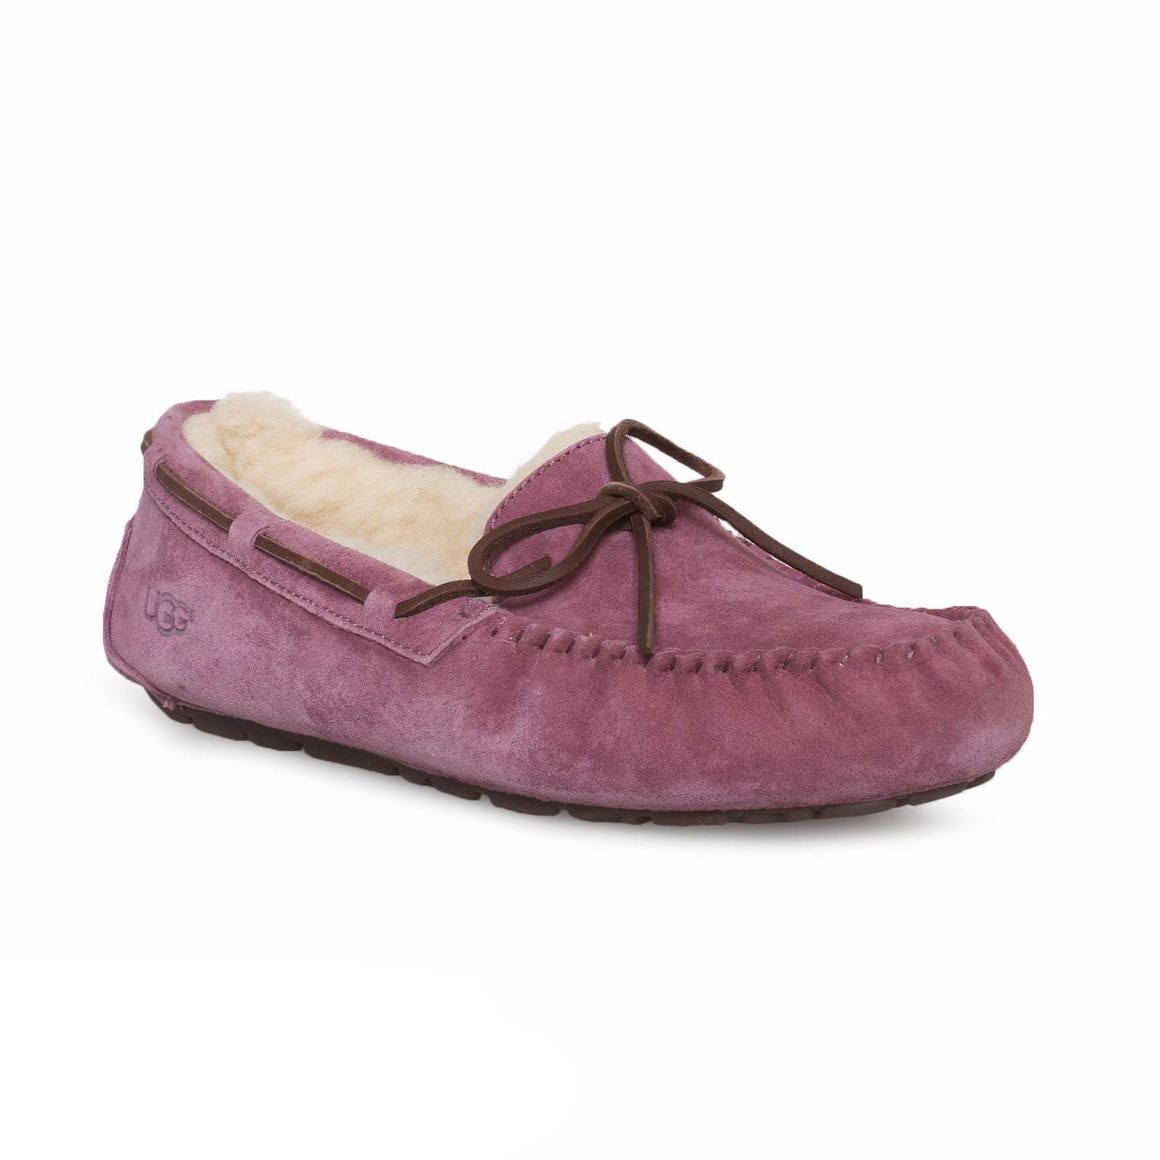 UGG Dakota Bougenvilla Slippers